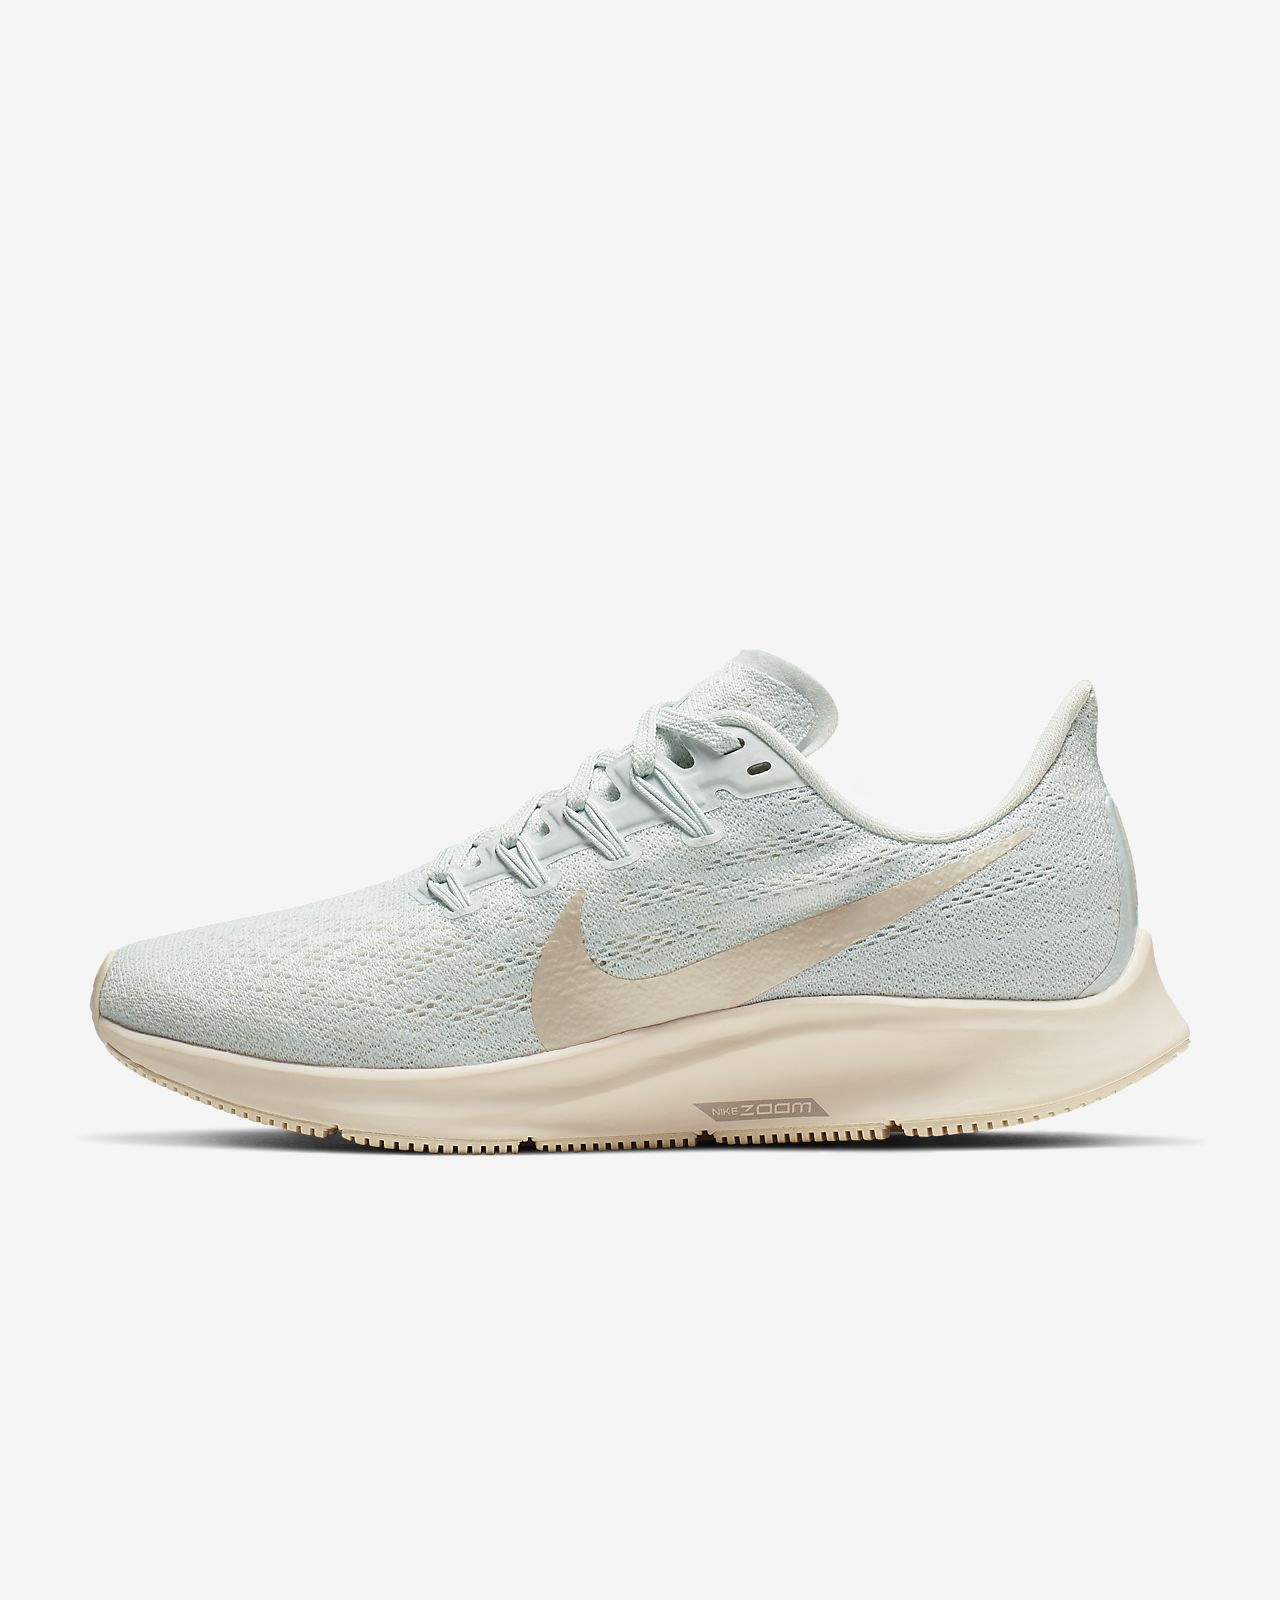 Nike Air Zoom Pegasus 36 女子跑步鞋